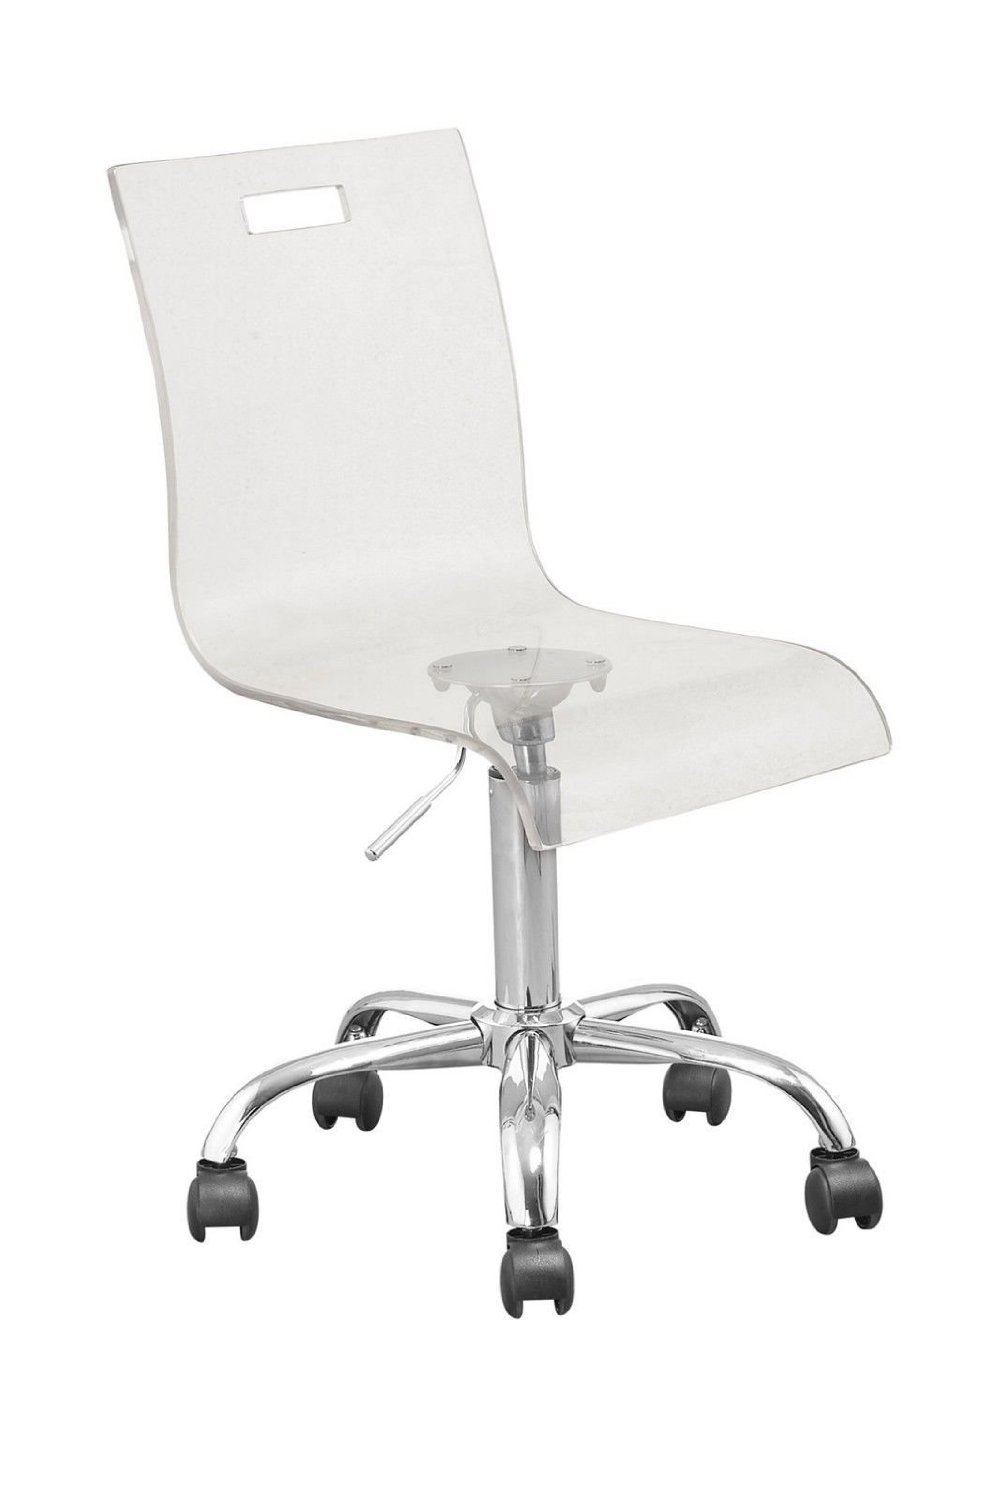 Merveilleux Amazon.com: Retro Acrylic Hydraulic Lift Adjustable Height Swivel Office  Desk Chair Clear (7009): Kitchen U0026 Dining